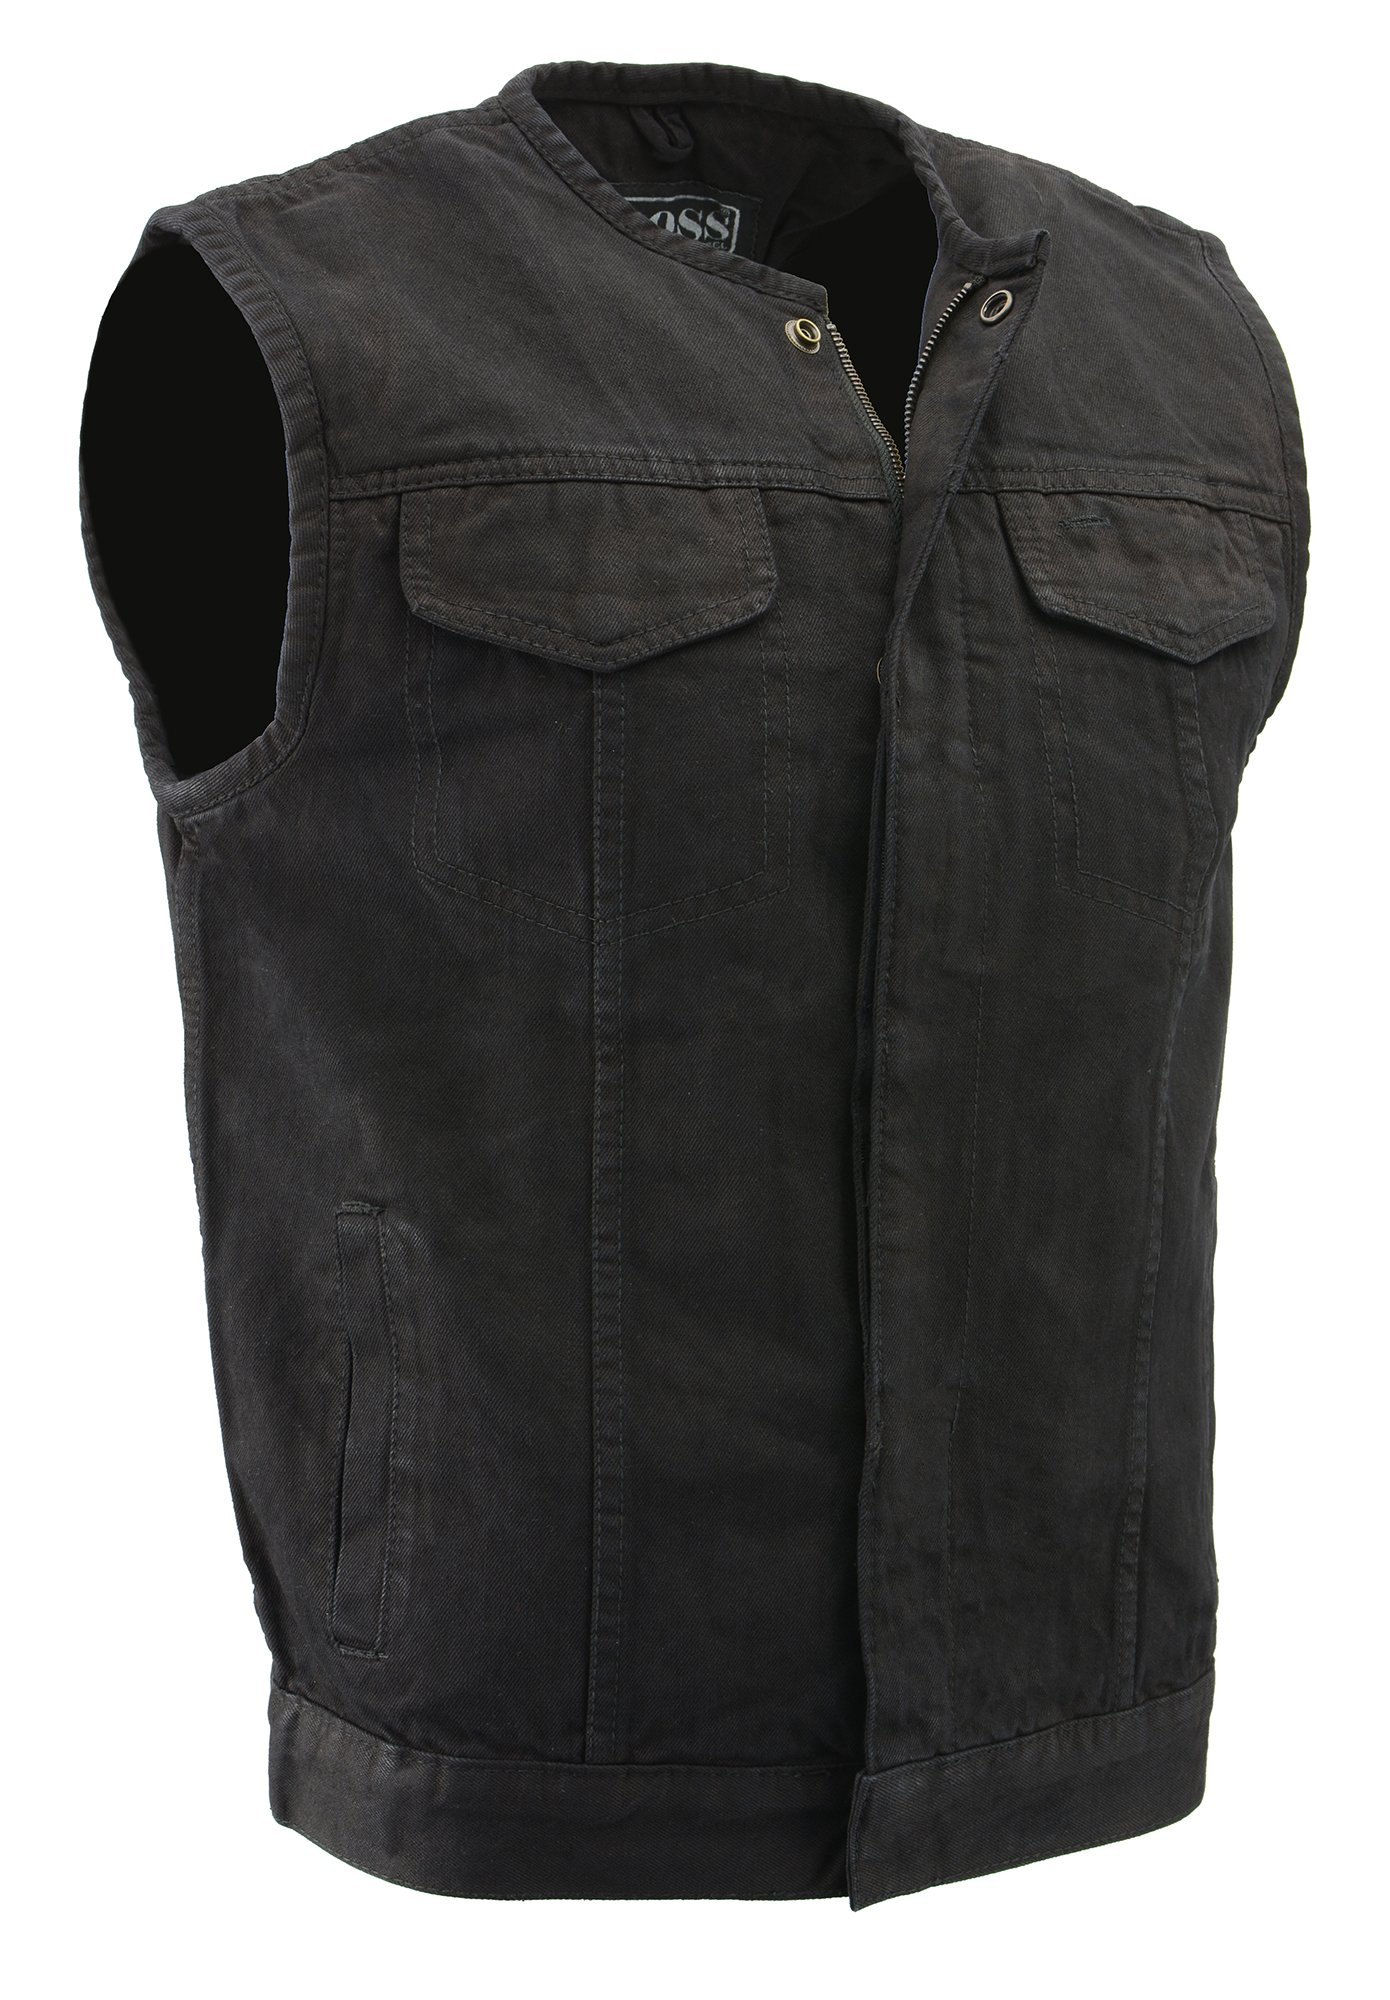 M-Boss Motorcycle Apparel-BOS13001-BLACK-Men's Collarless Denim Club Style Vest w/Hidden Zipper-BLACK-5XL